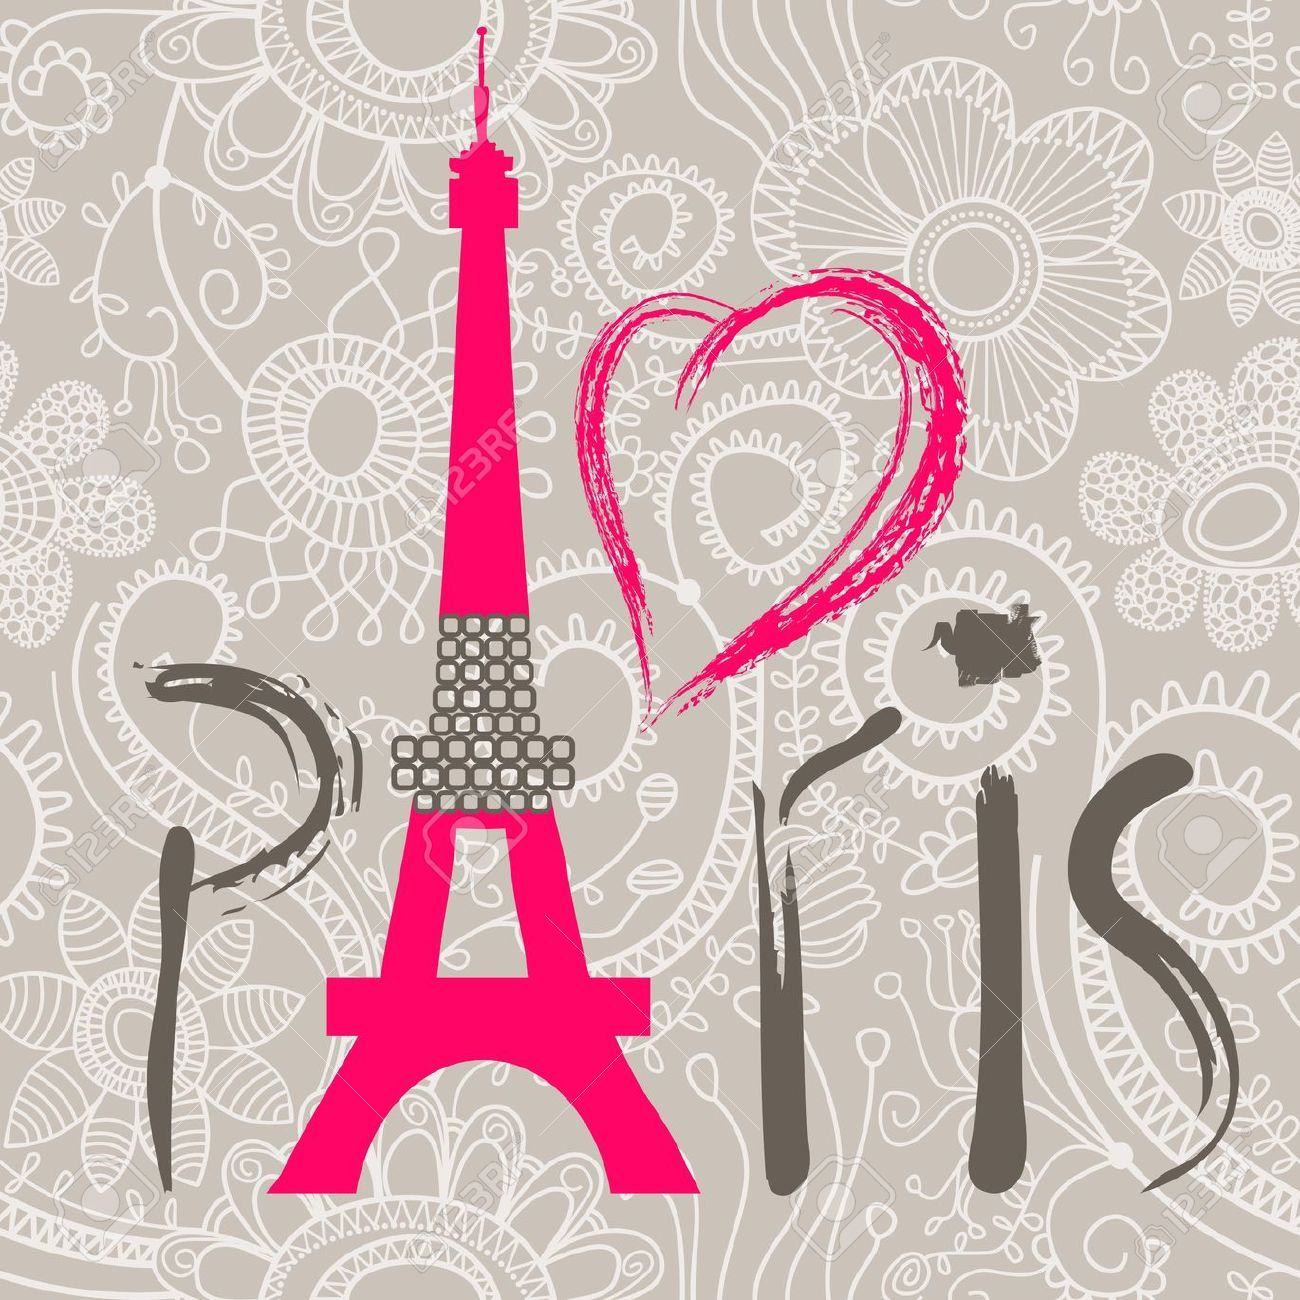 I Love Paris Wallpaper cartoon : cute Paris Wallpaper 6 HD Quality Wallpapers Full Size Scrapbook / Planner Ideas Pinterest ...